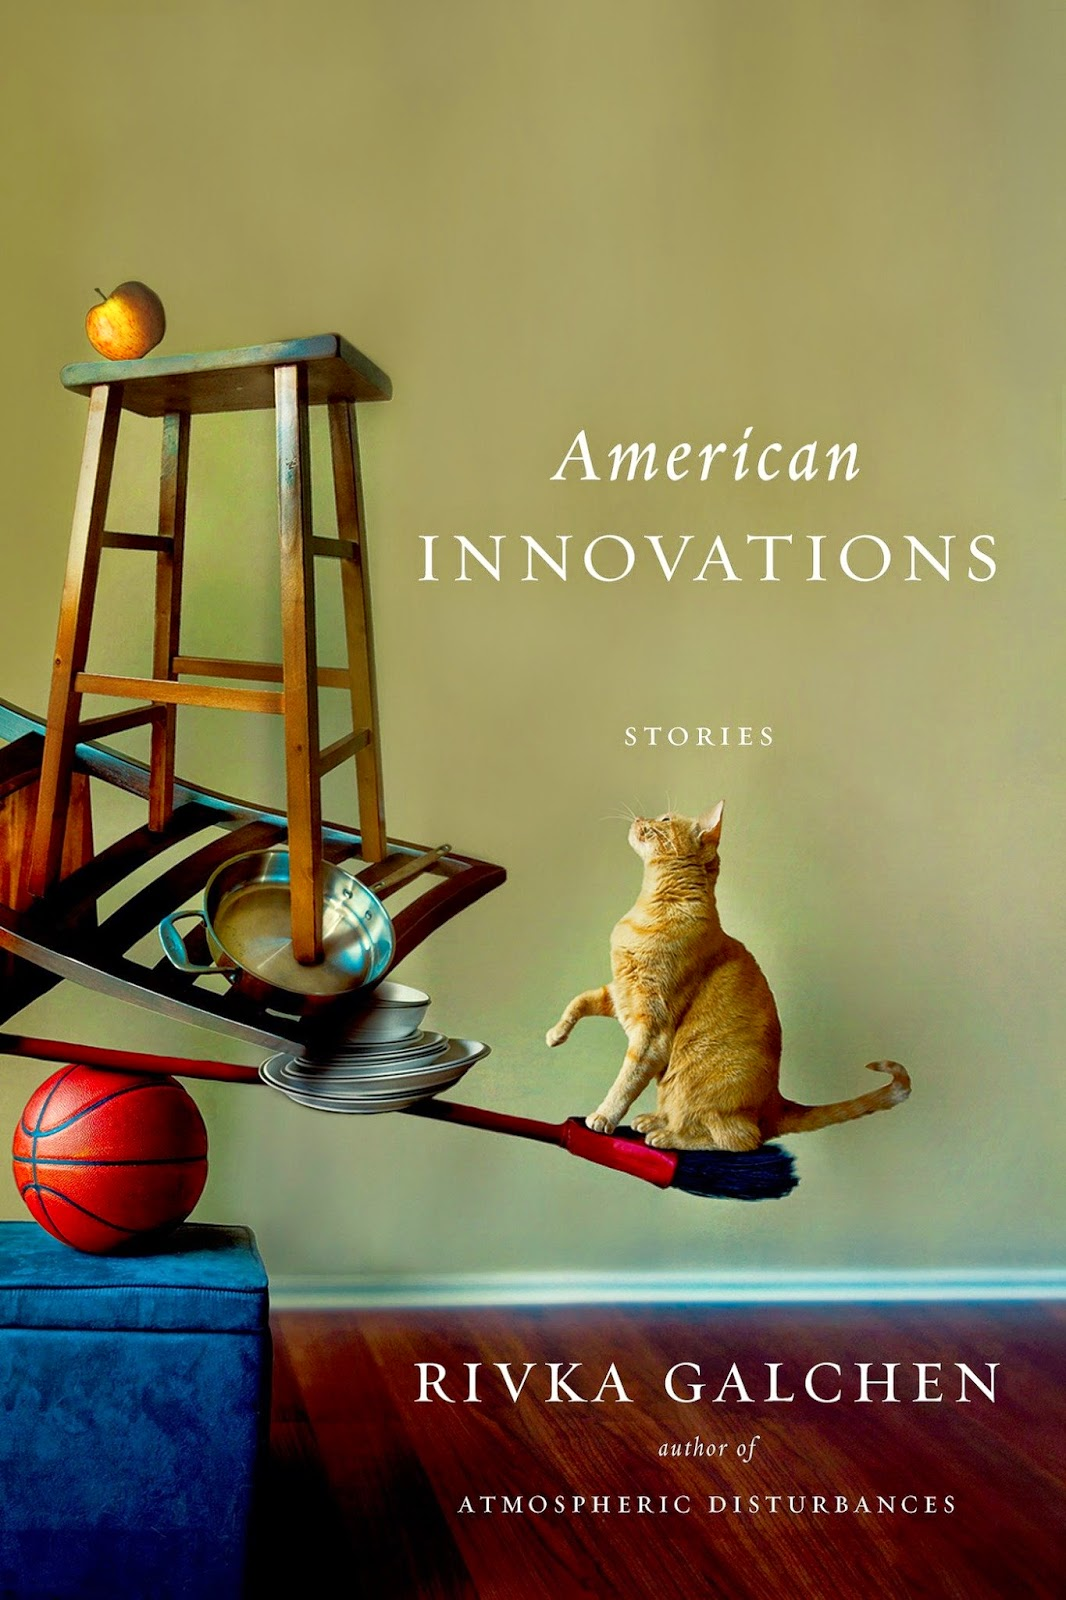 http://discover.halifaxpubliclibraries.ca/?q=title:american%20innovations